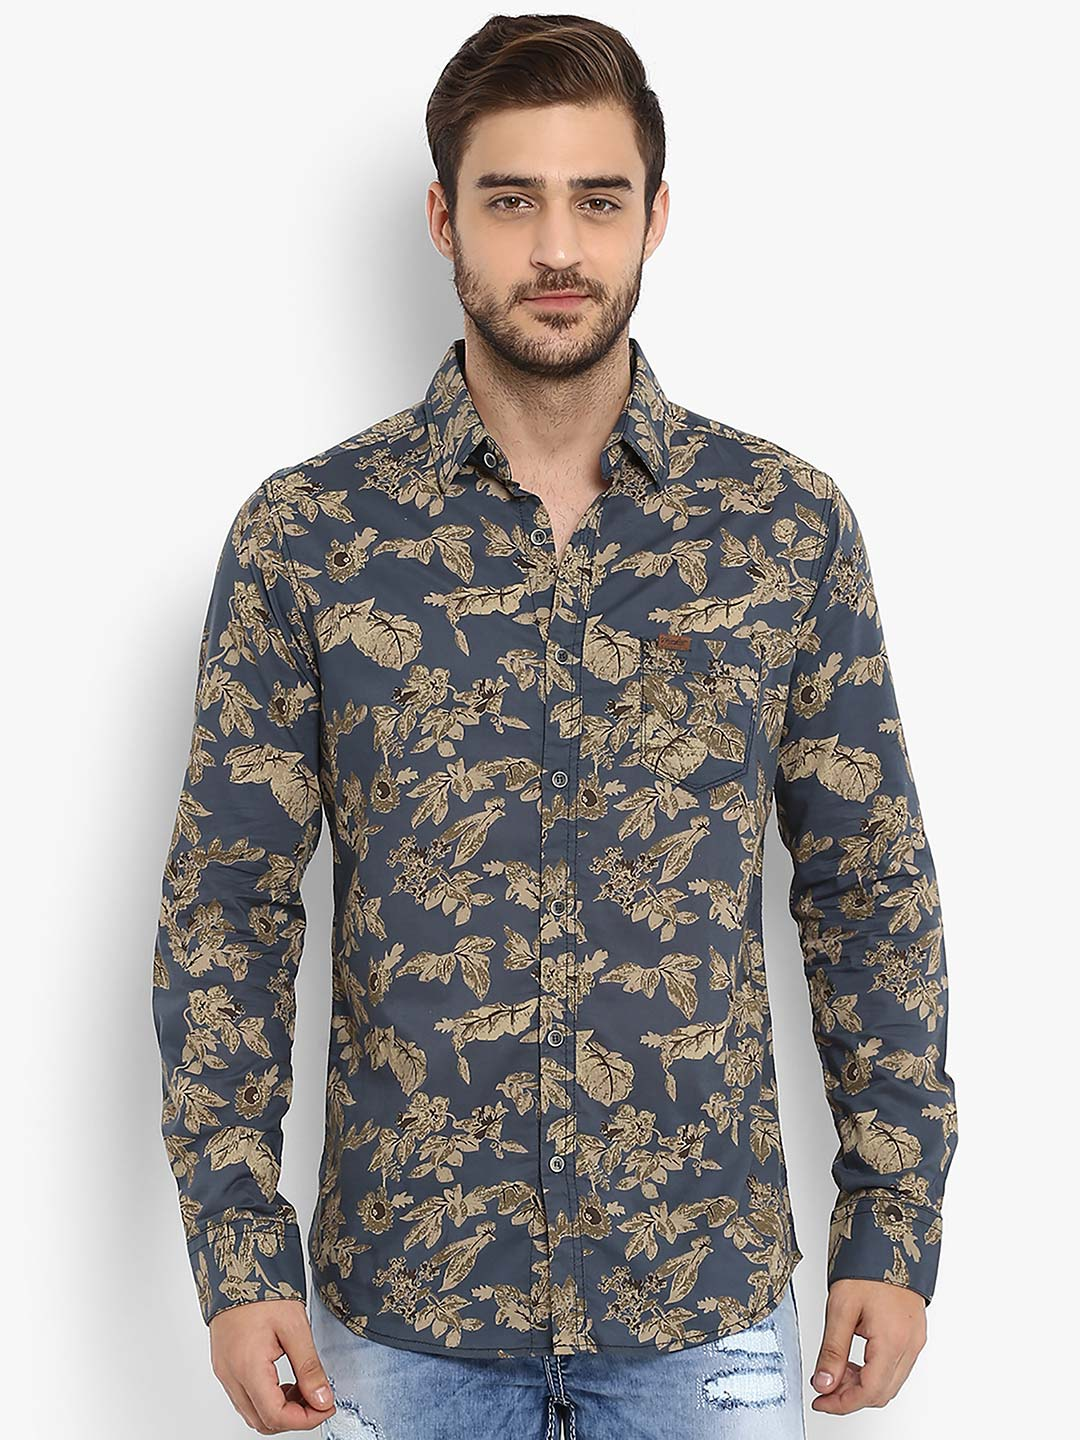 59881c0c3497 Mufti Shirts Online Shopping India - DREAMWORKS